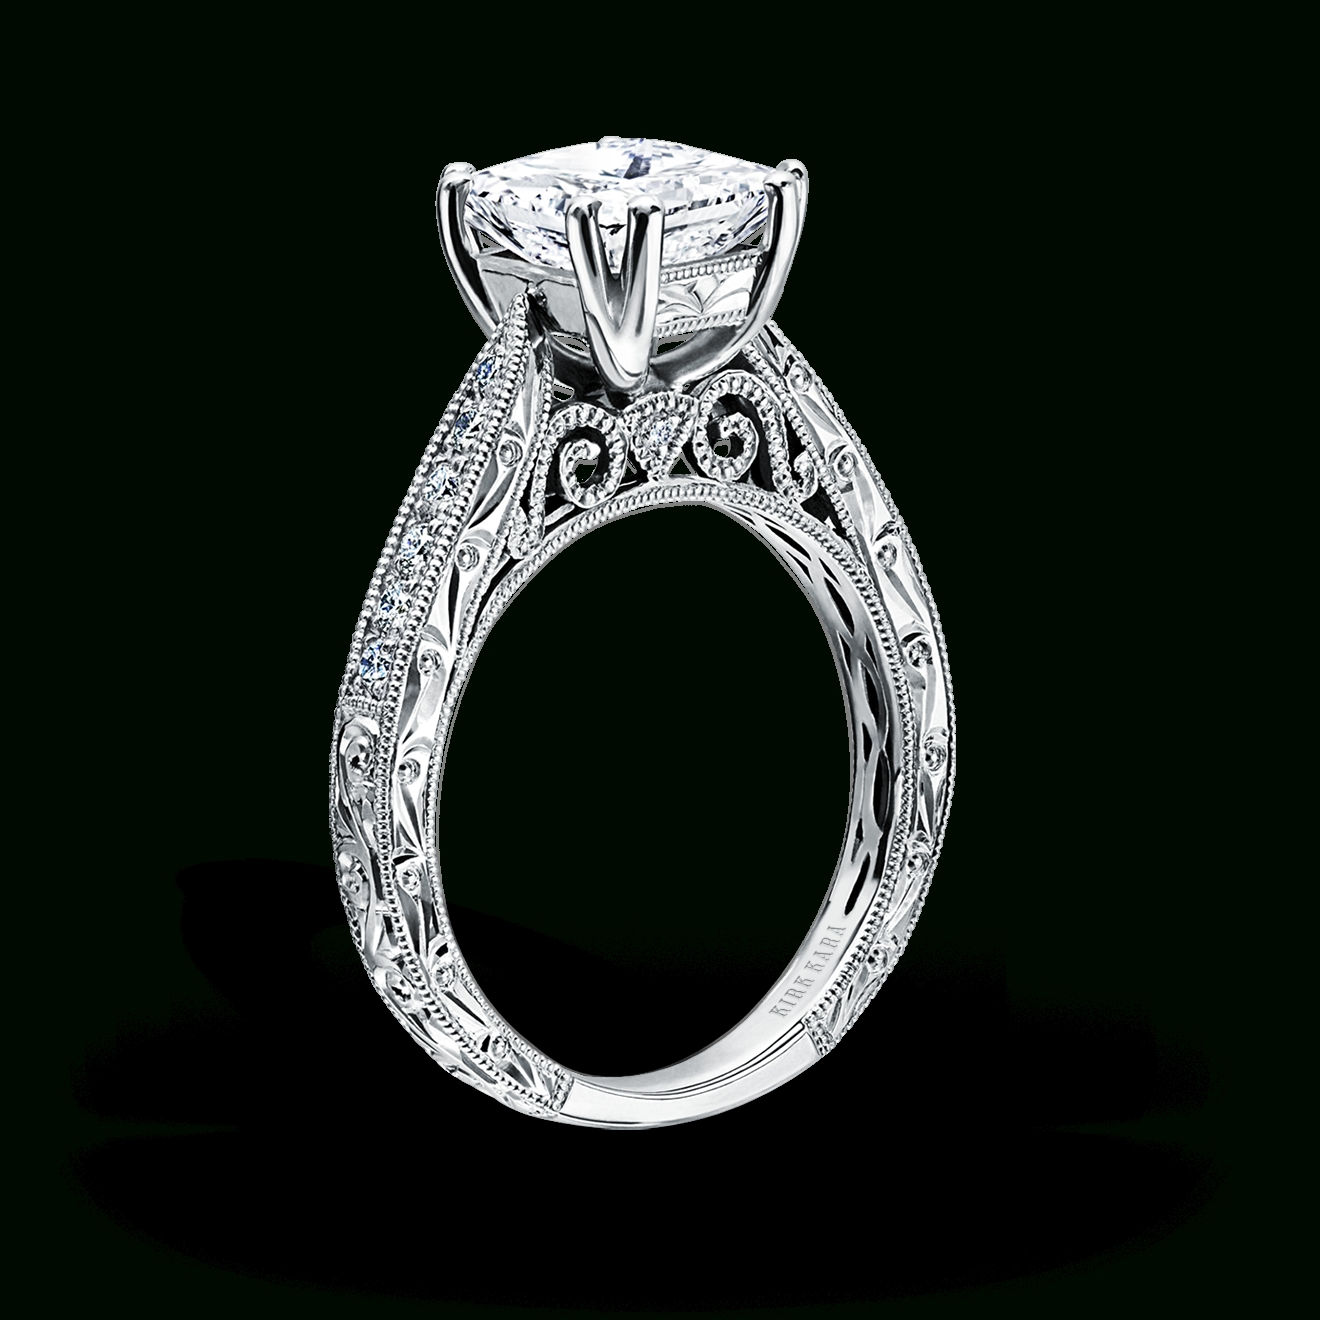 Vintage Inspired Filigree Diamond Engagement Ringskirk Kara Within Antique Inspired Wedding Rings (View 13 of 15)